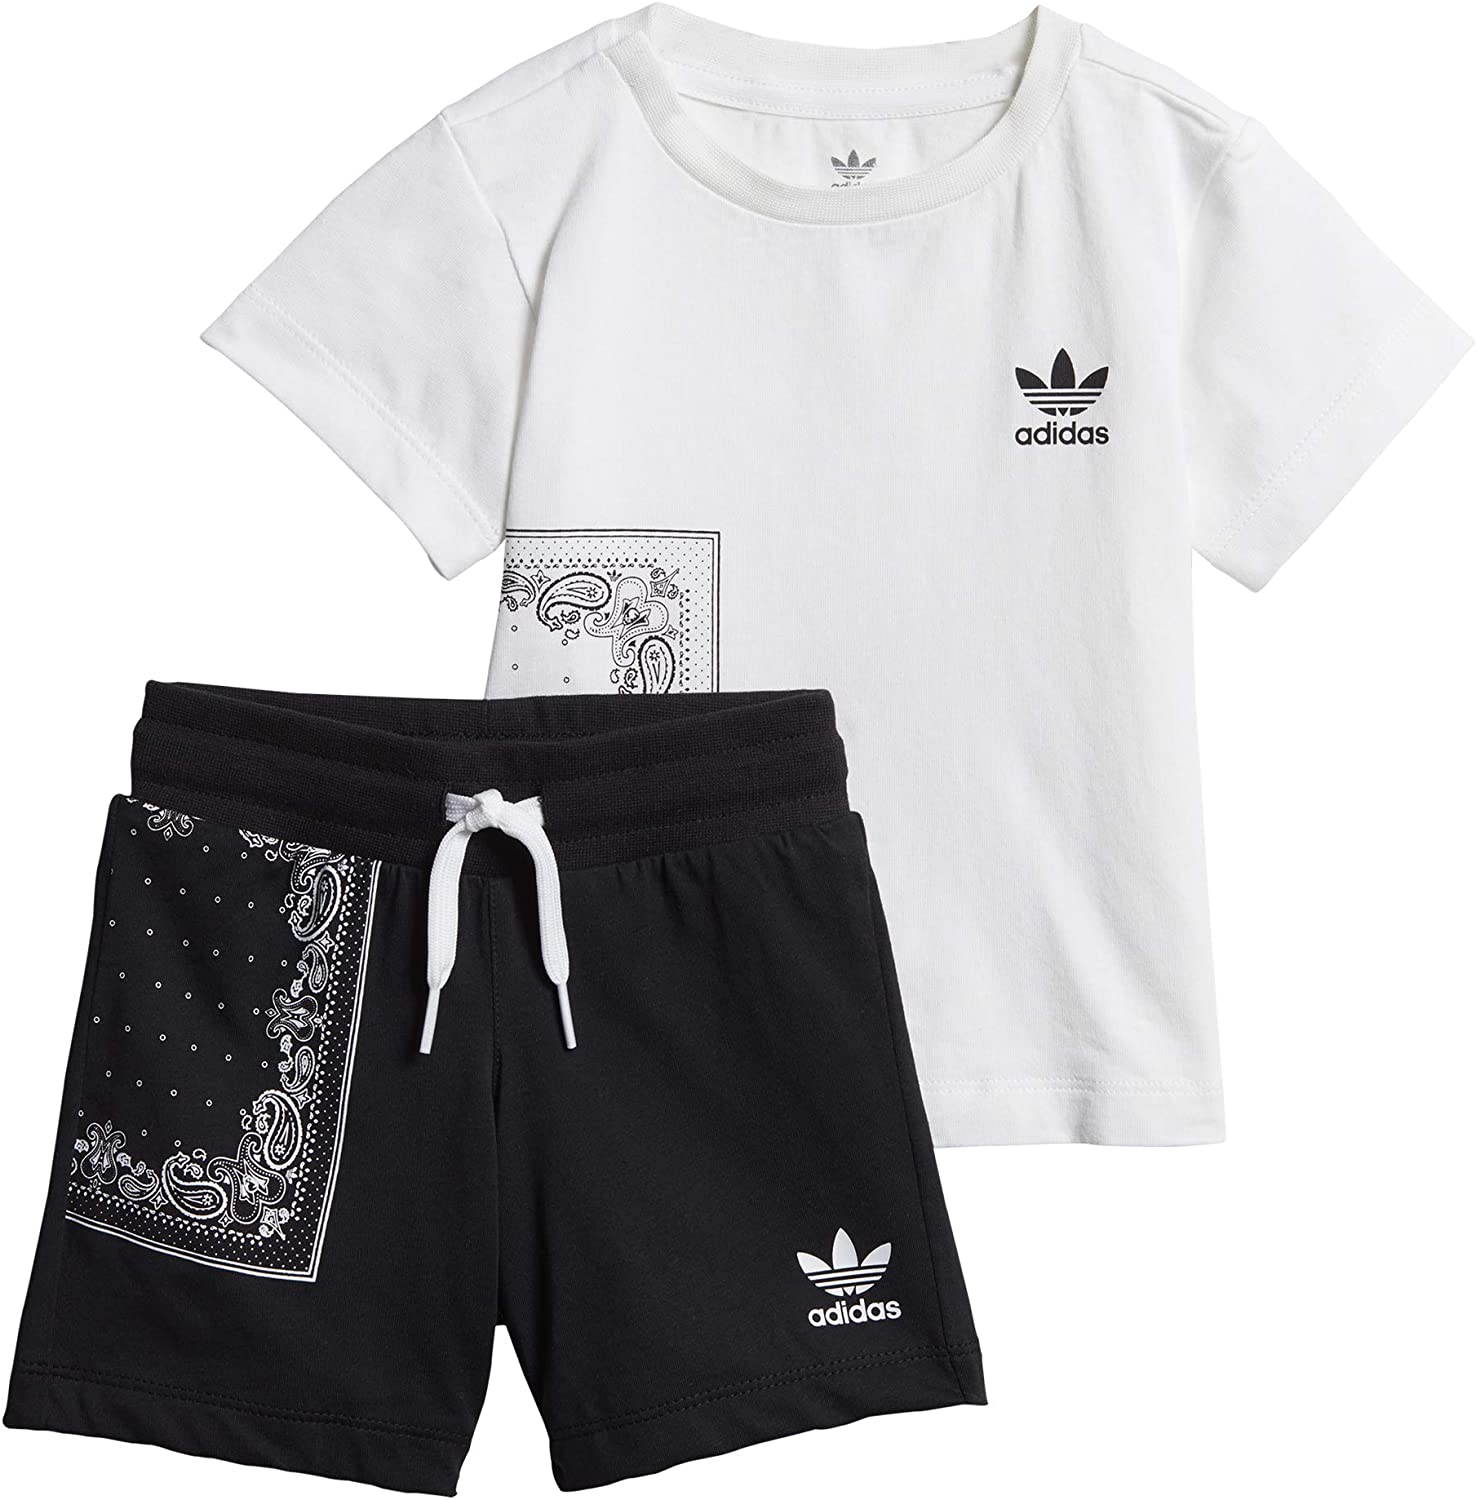 Survêtement Baby Adidas Bandana (t Shirt + Short):